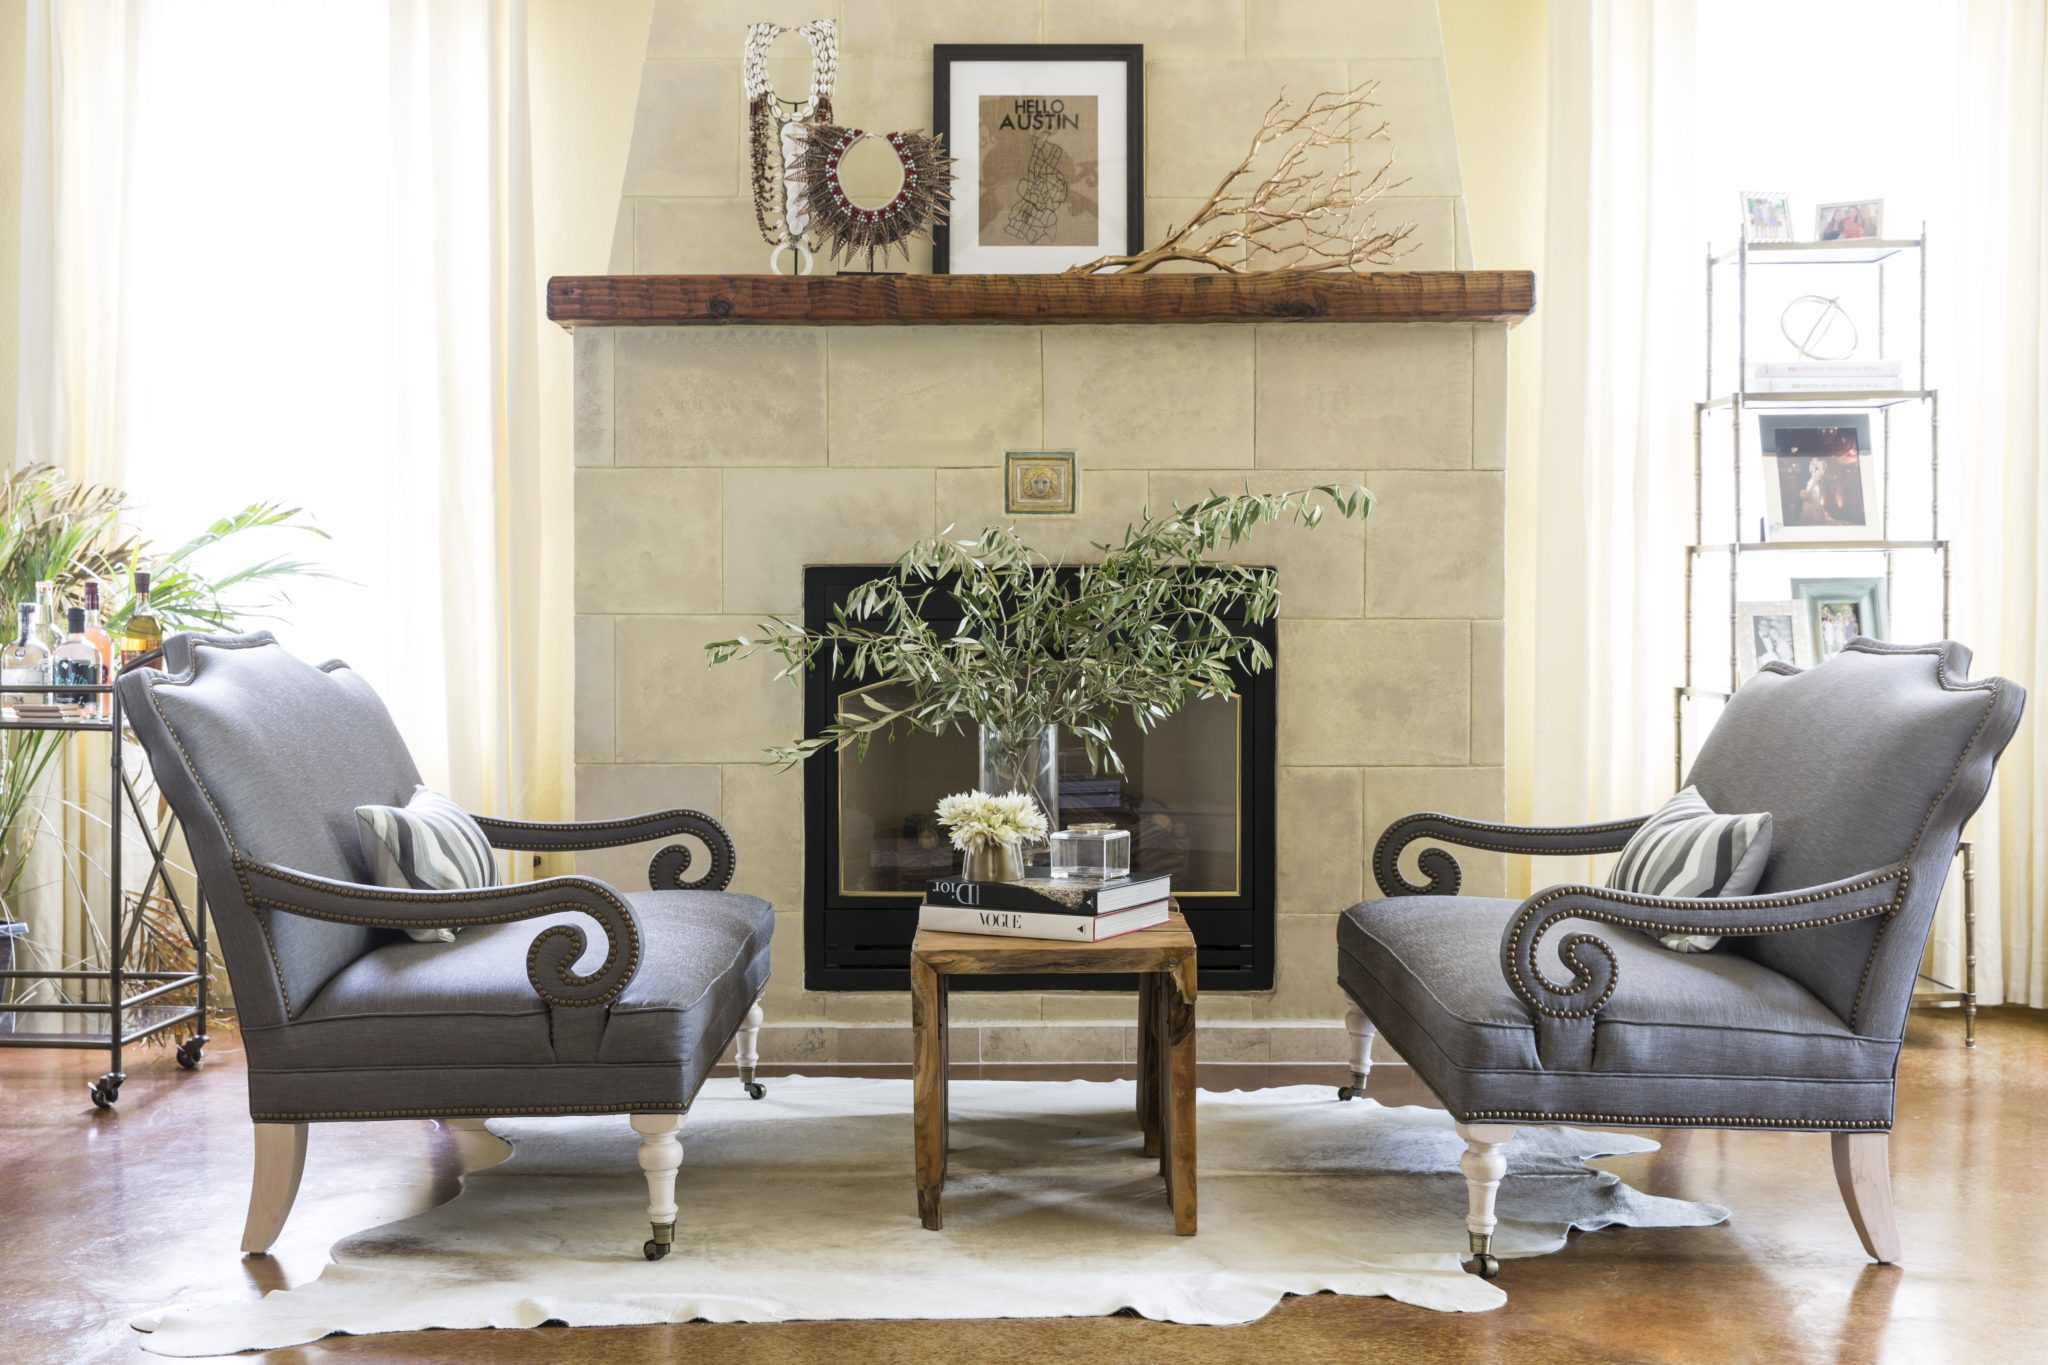 California Casual - Fireplace Seating + Neutral Accessories by Maureen Stevens Design